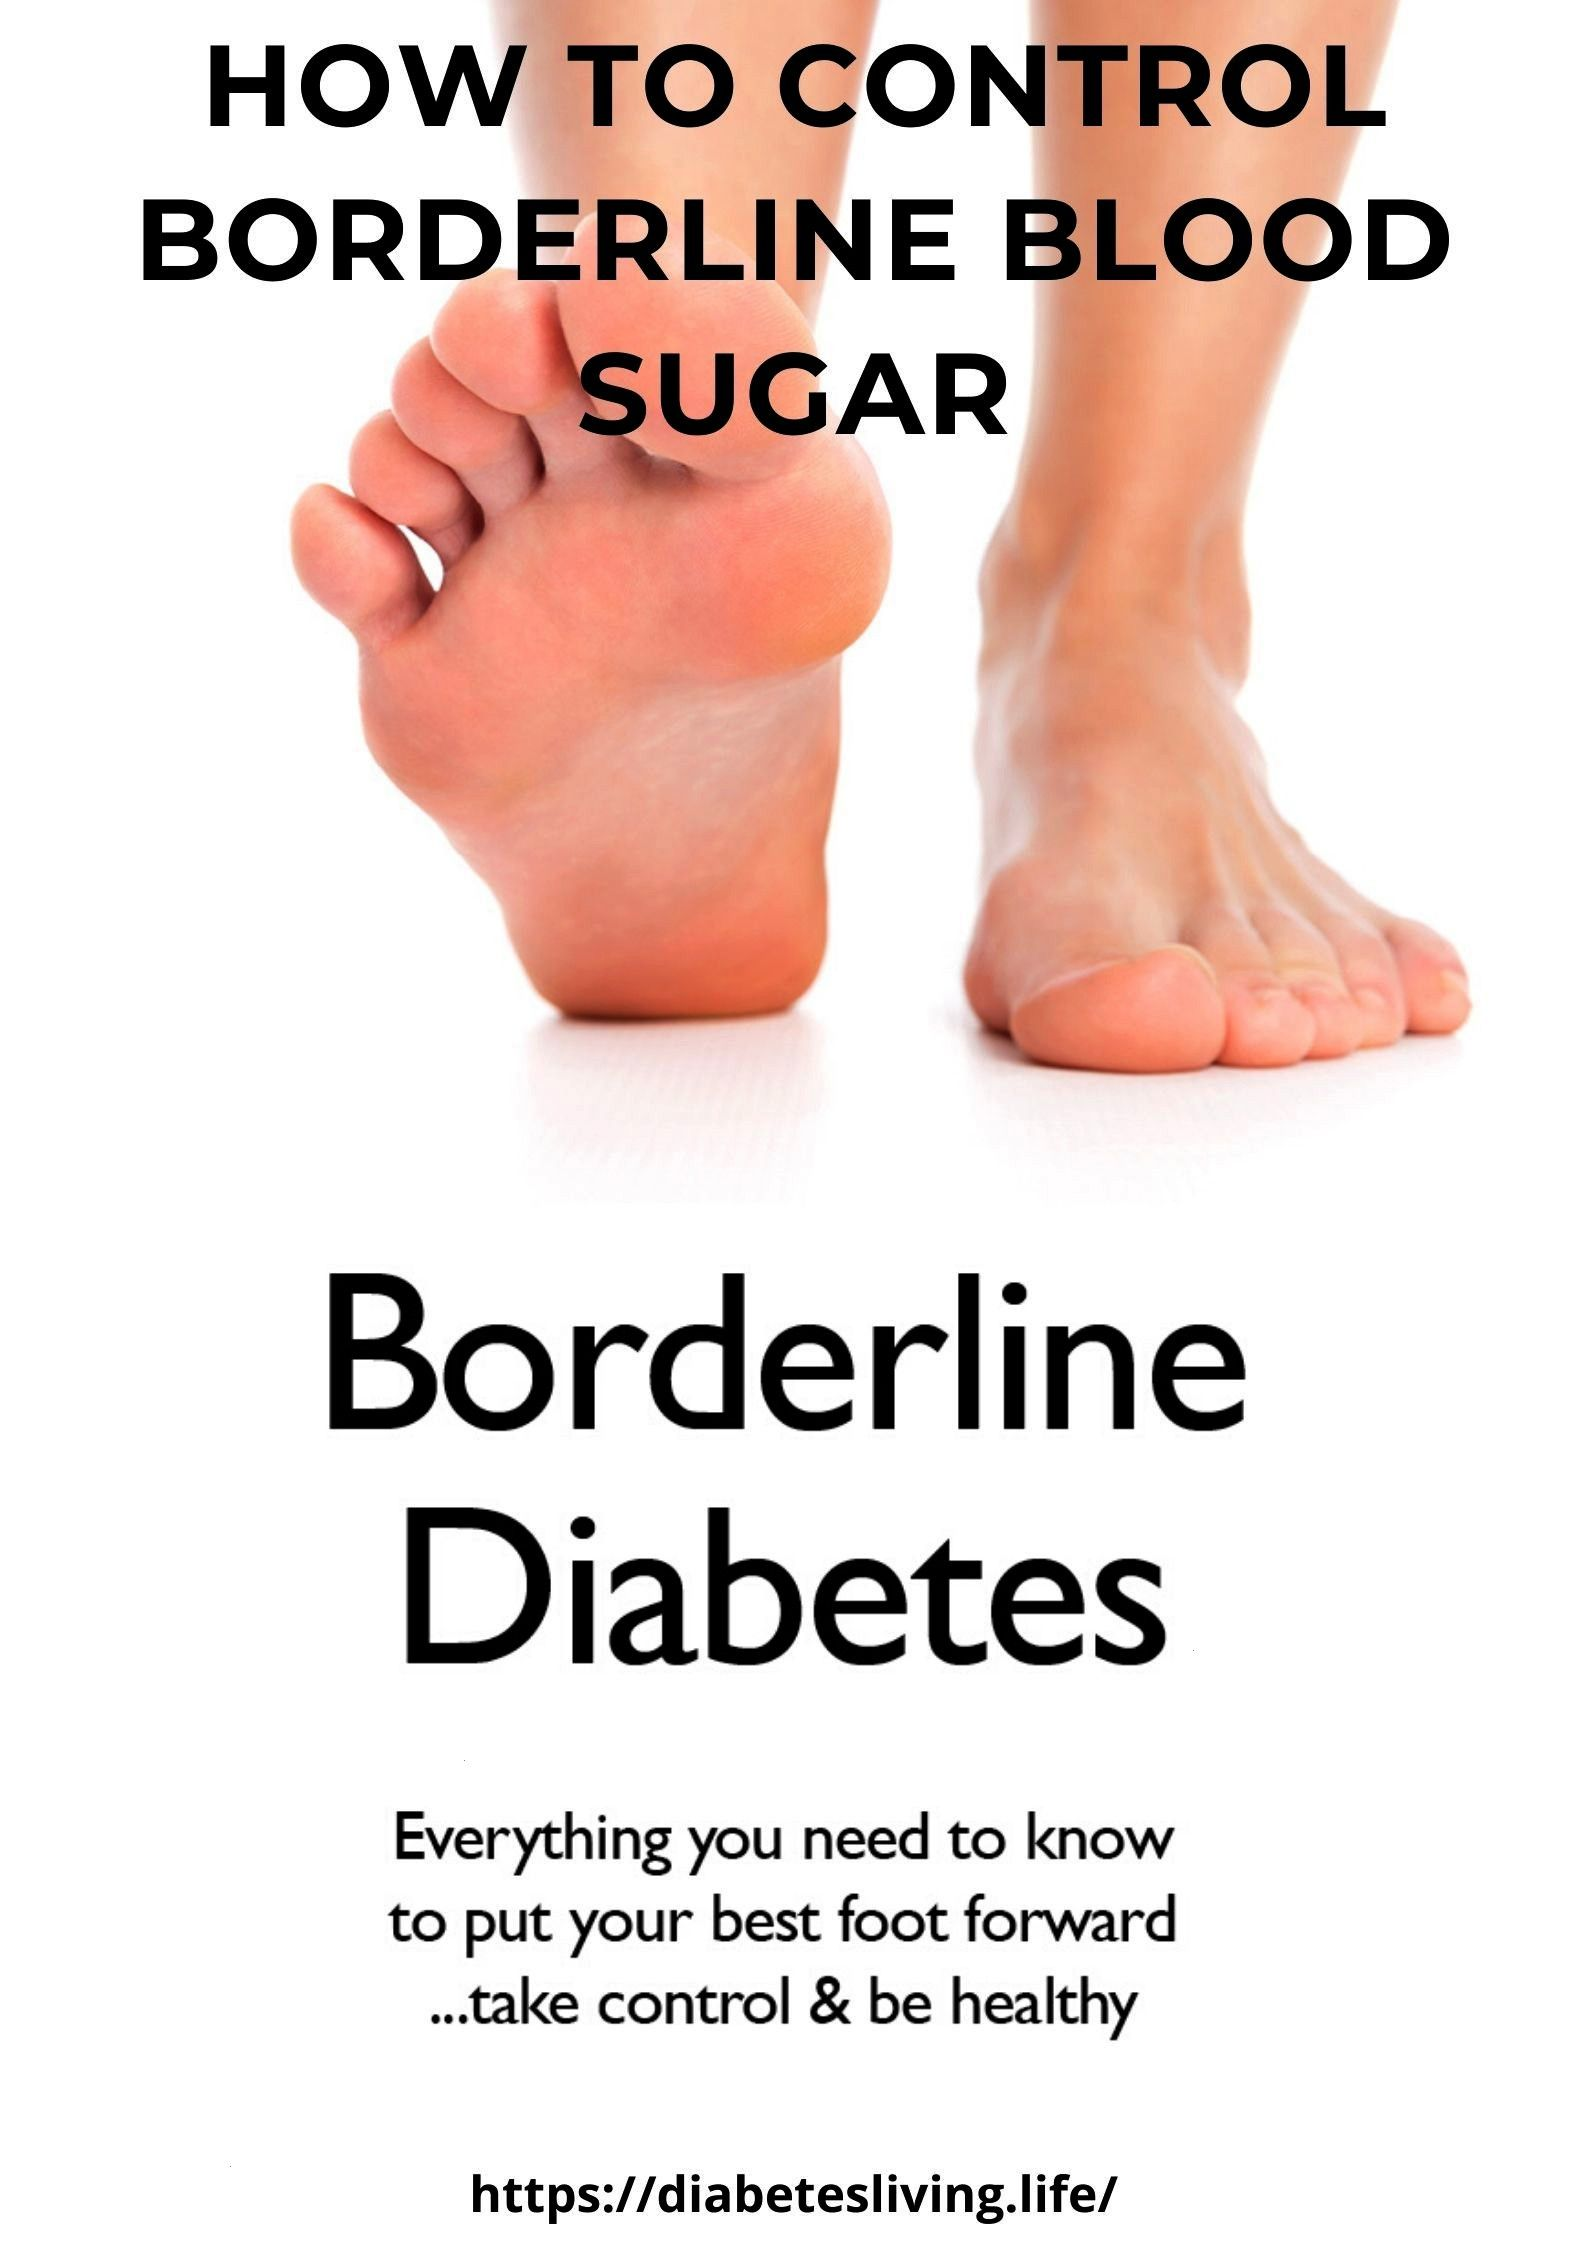 to control borderline blood sugar how to control borderline blood sugar   how to control borderl